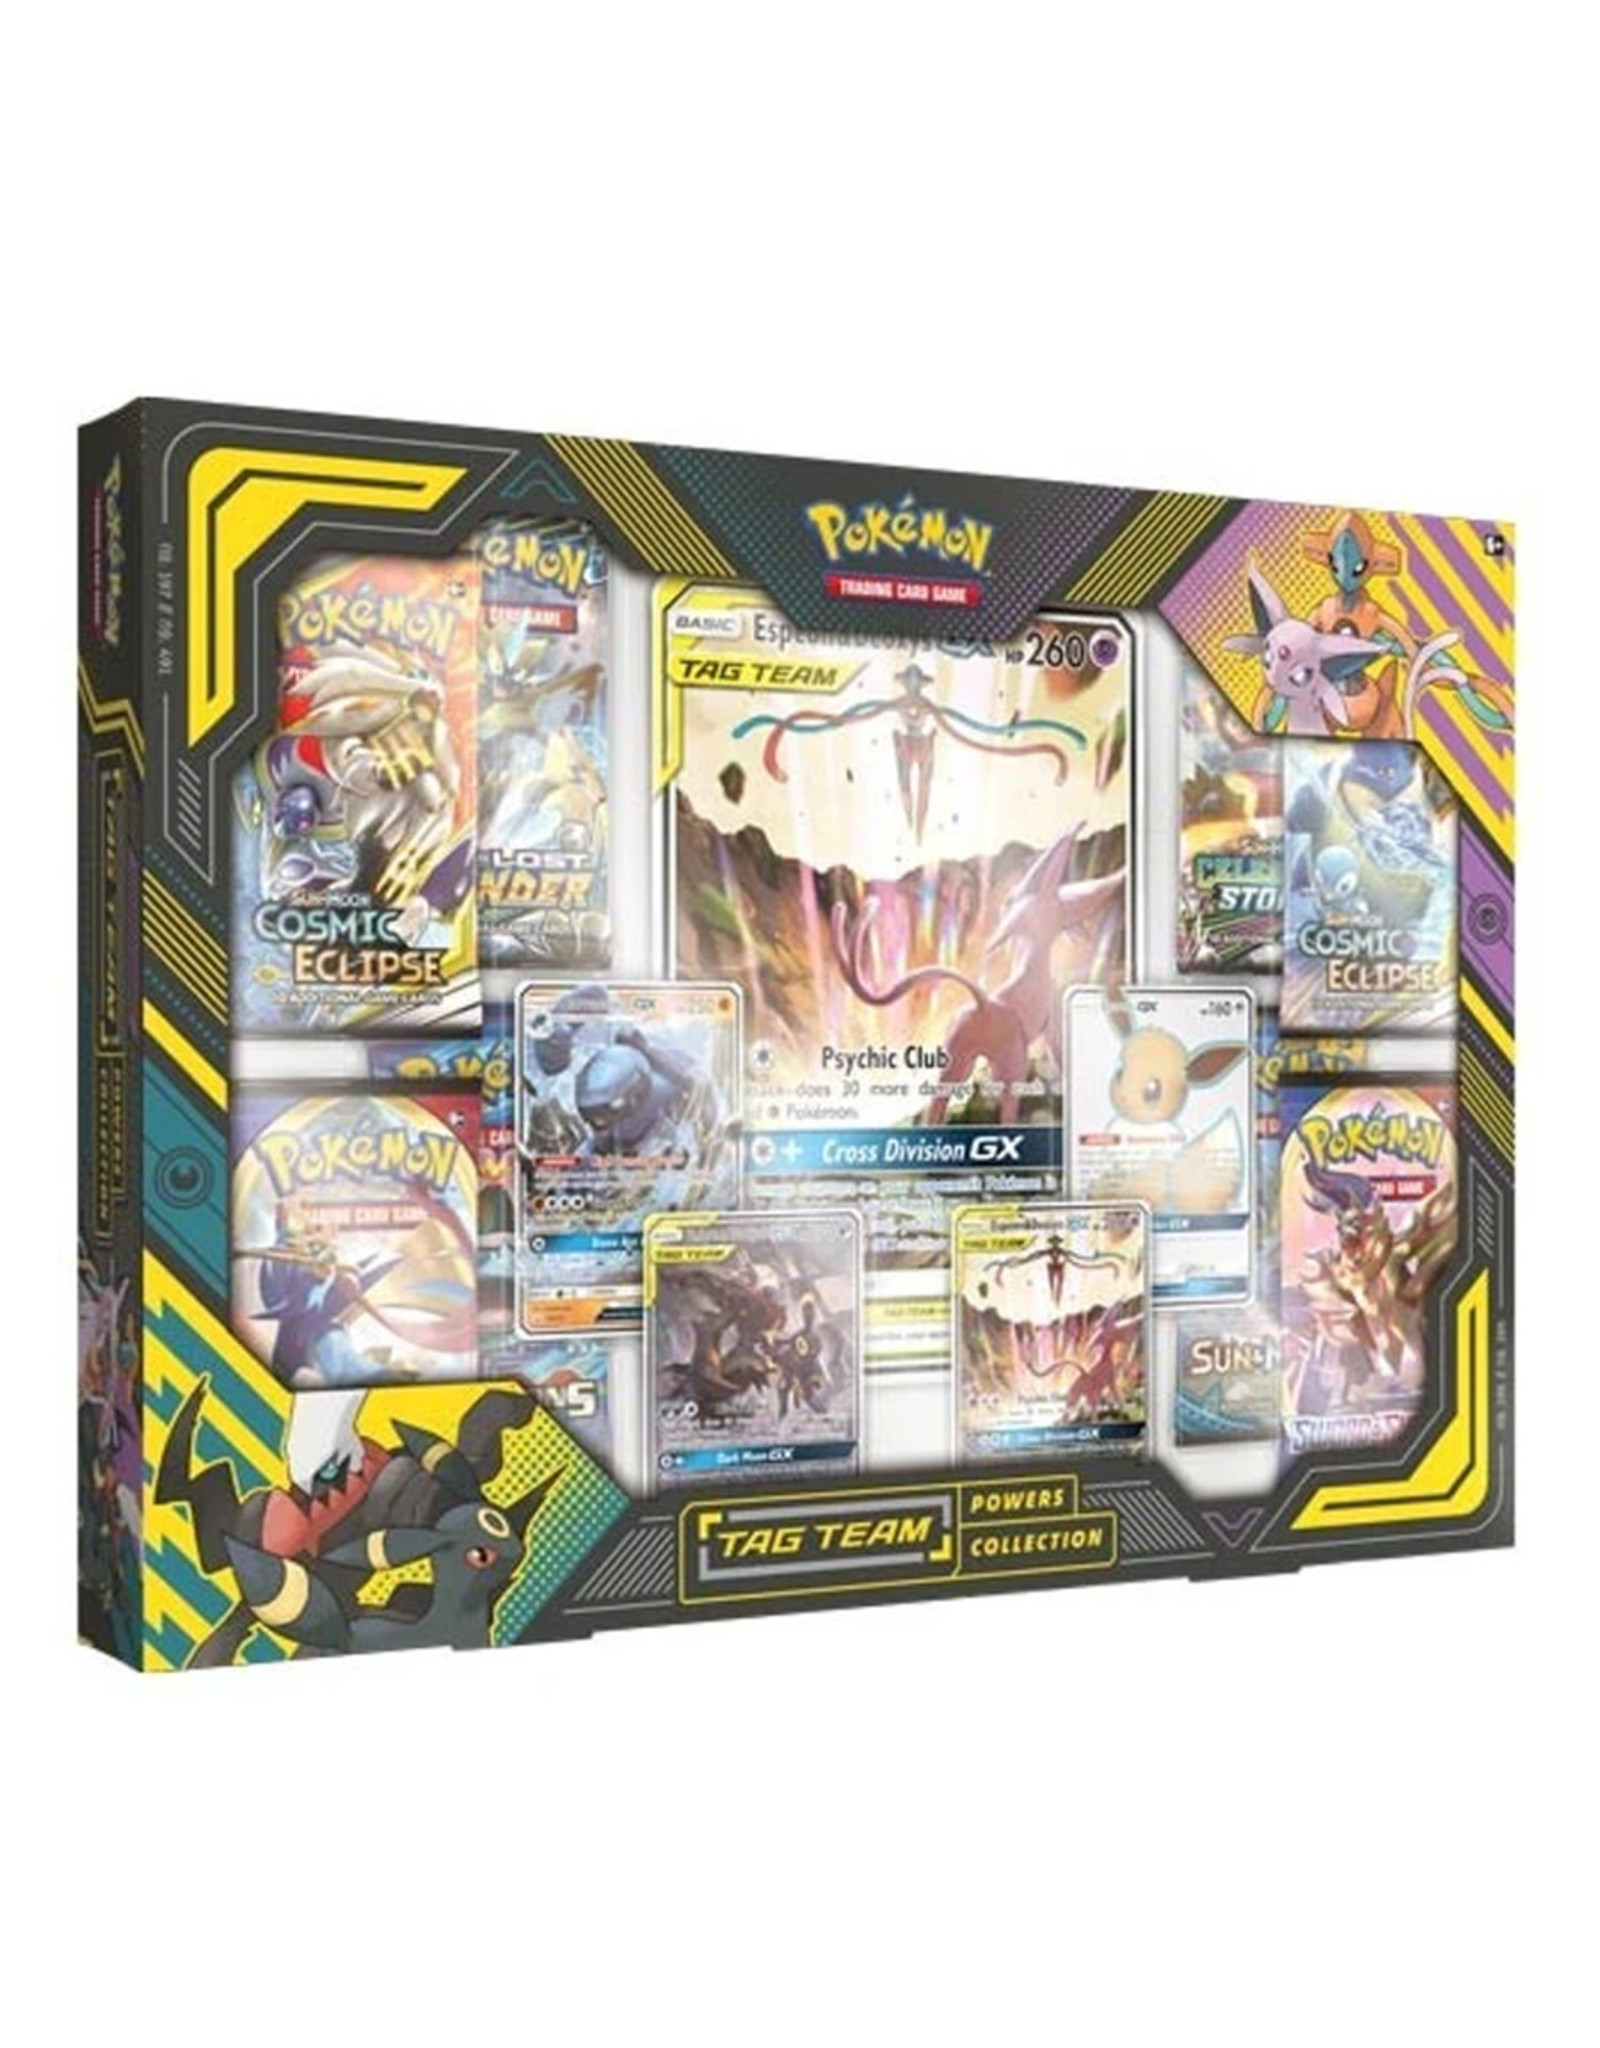 Pokemon Company Pokemon: Tag Team Powers Collection